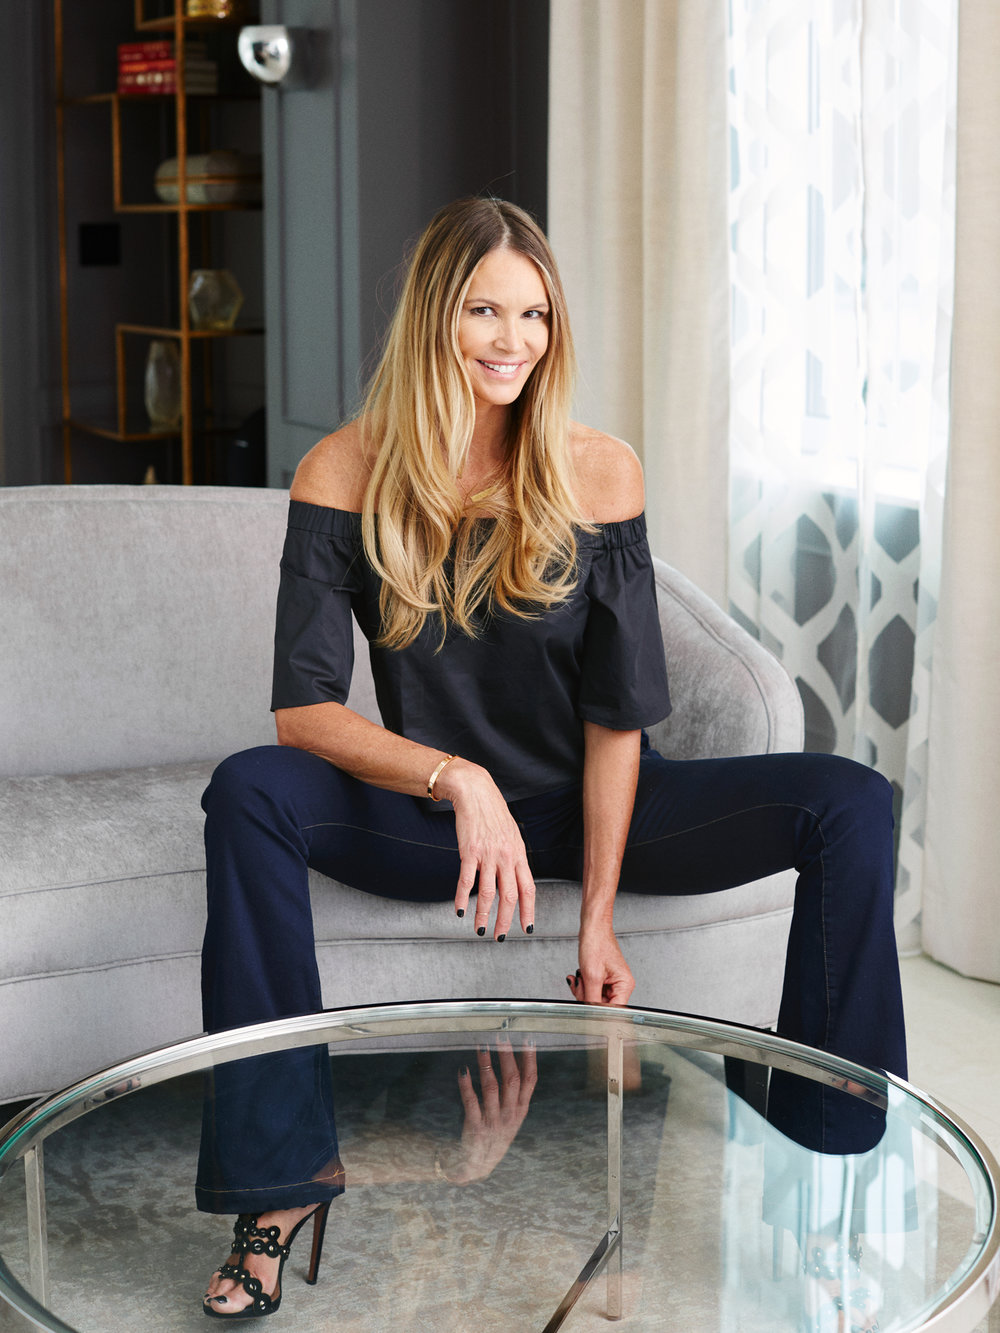 Elle Macpherson/The New York Times